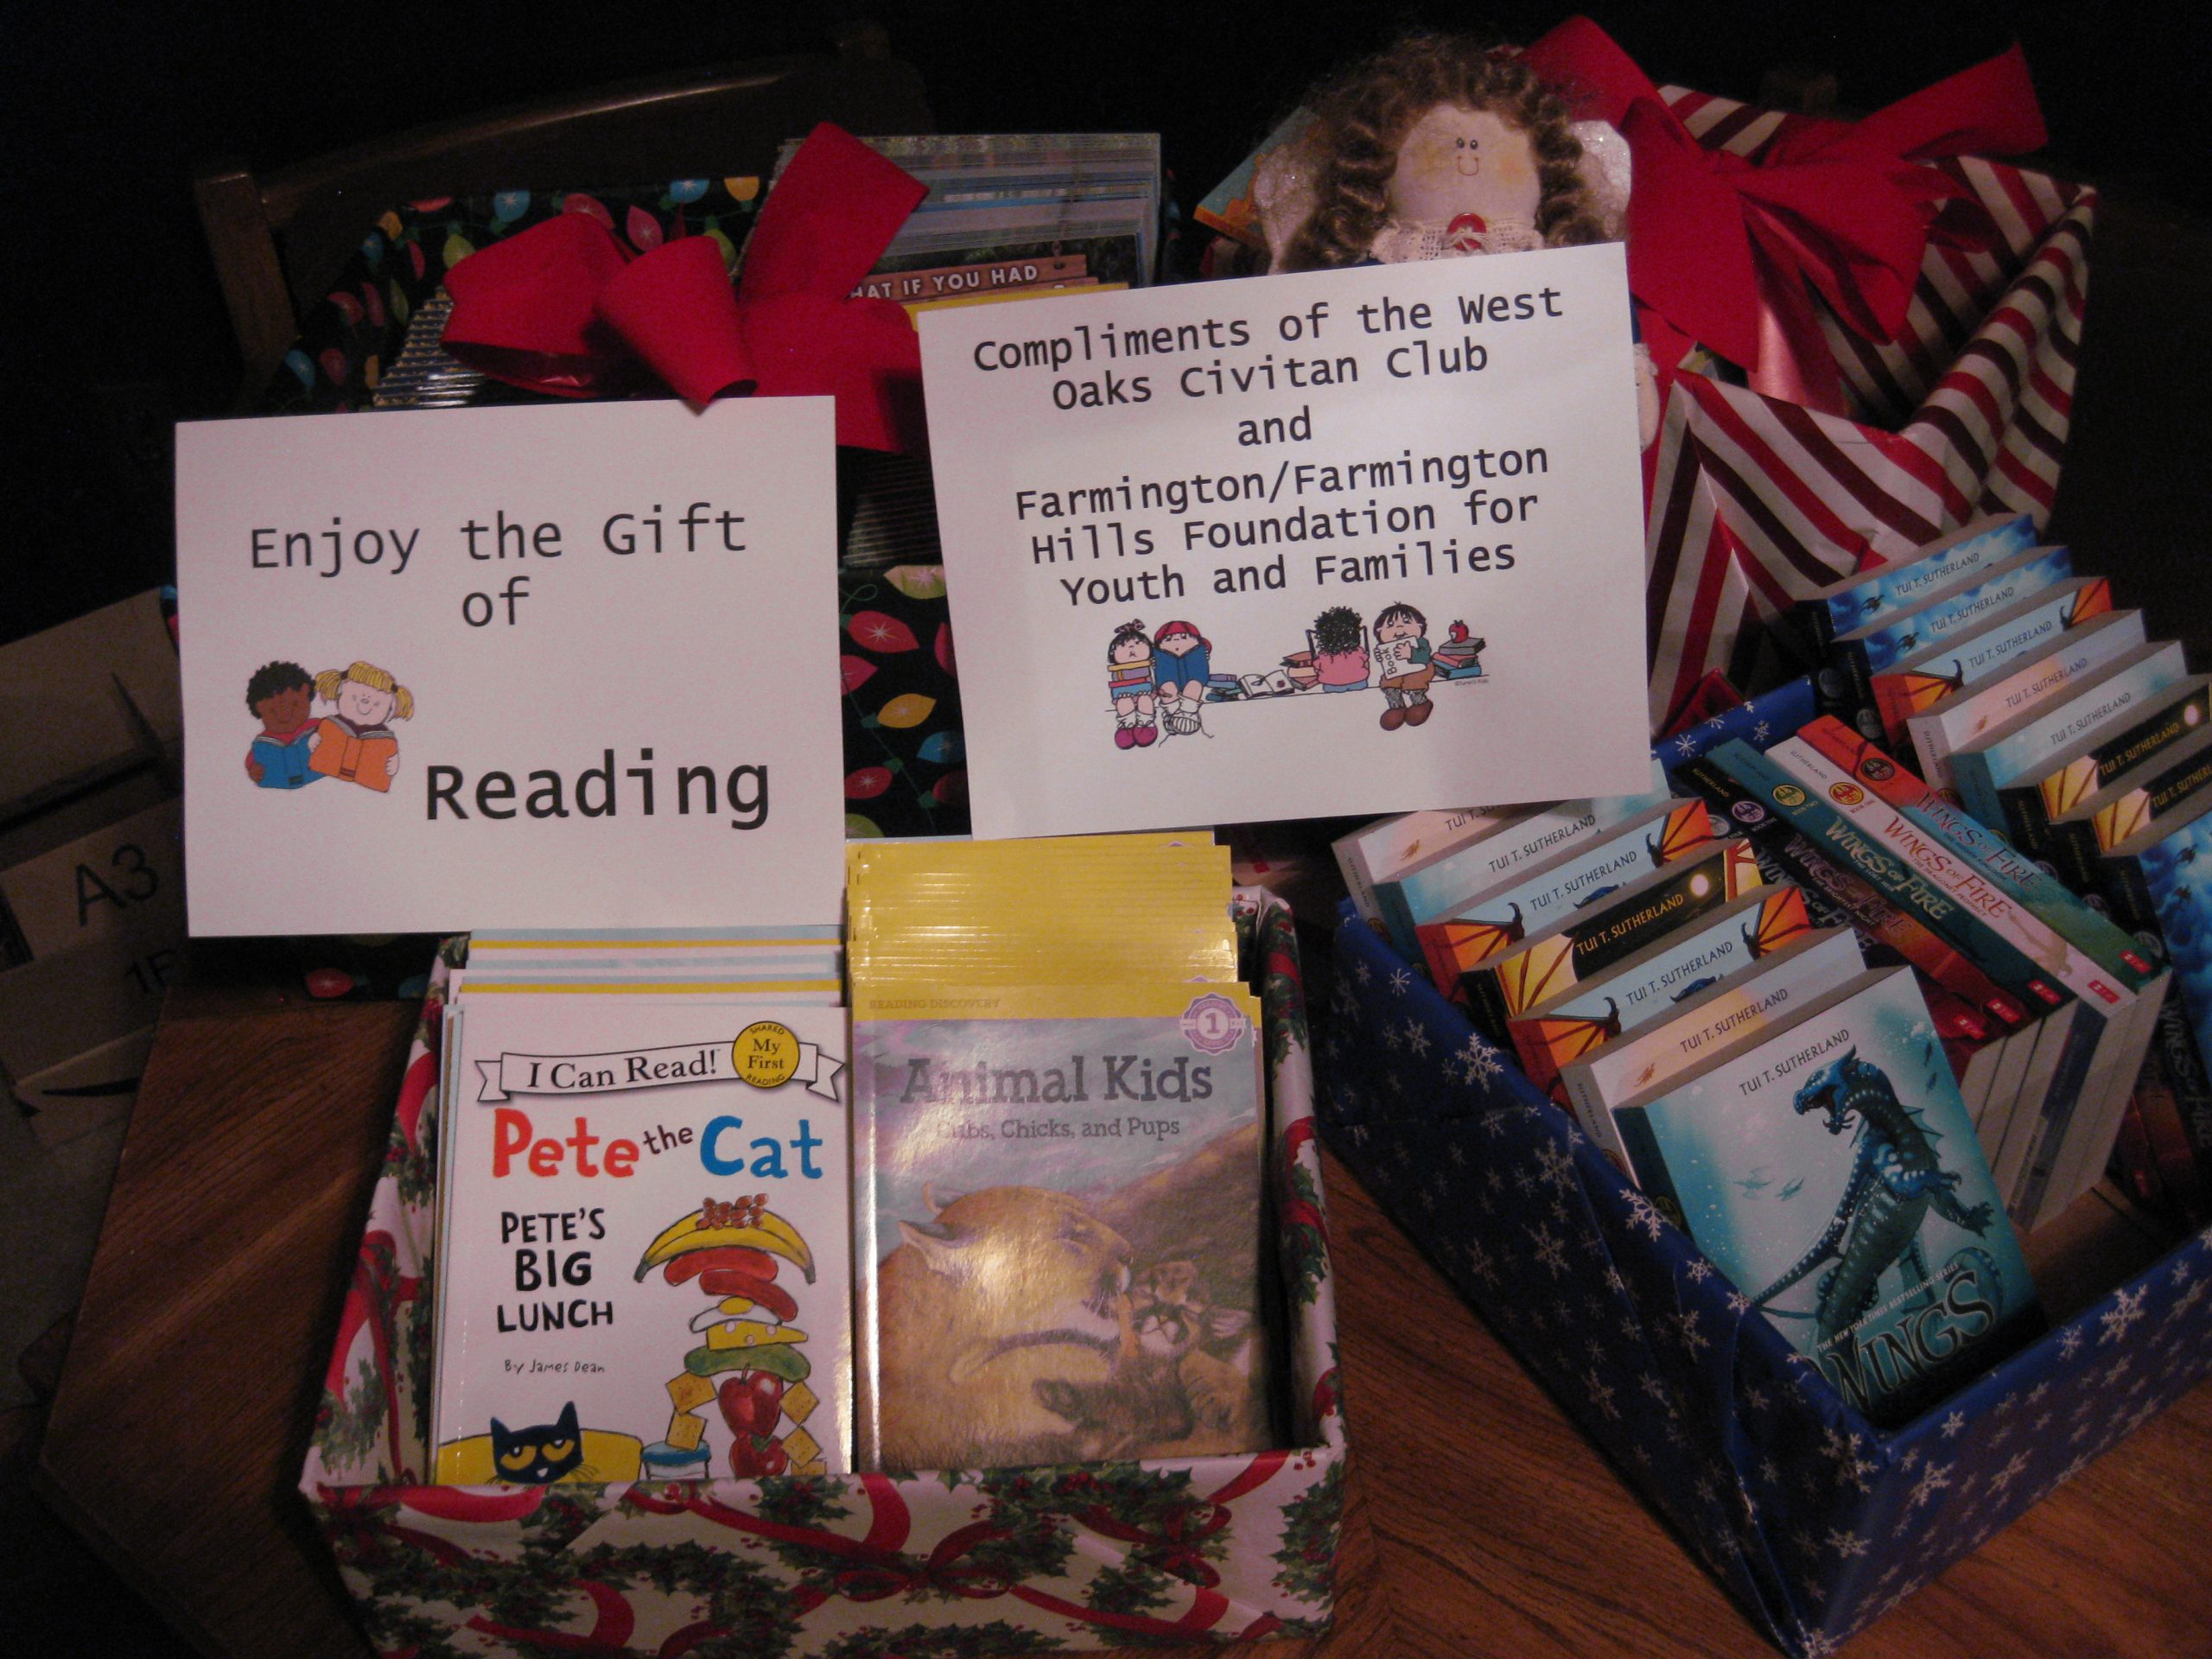 Enjoy the Gift of Reading